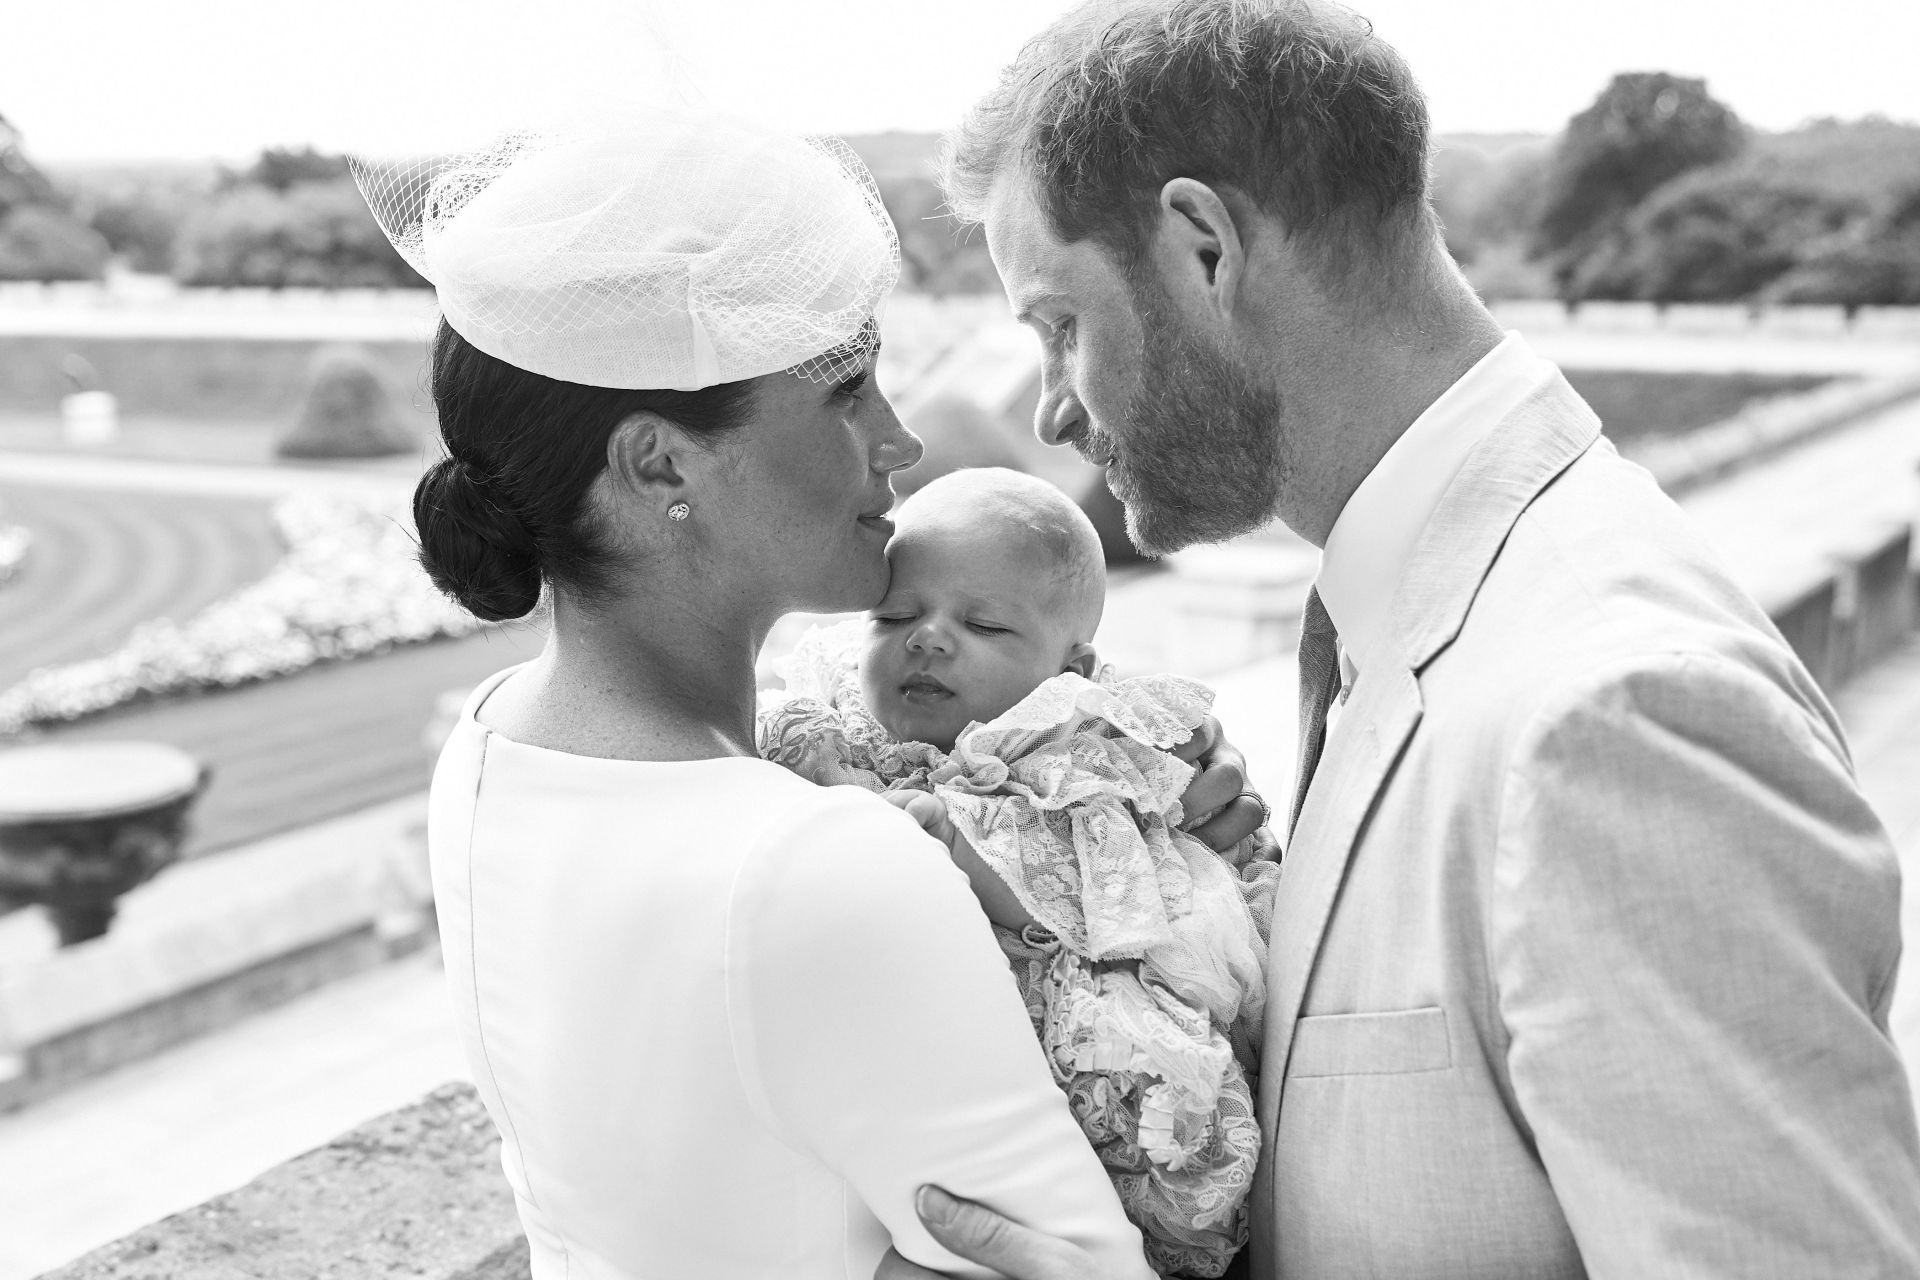 How Kate Middleton and Meghan Markle broke royal tradition at Archie's christening